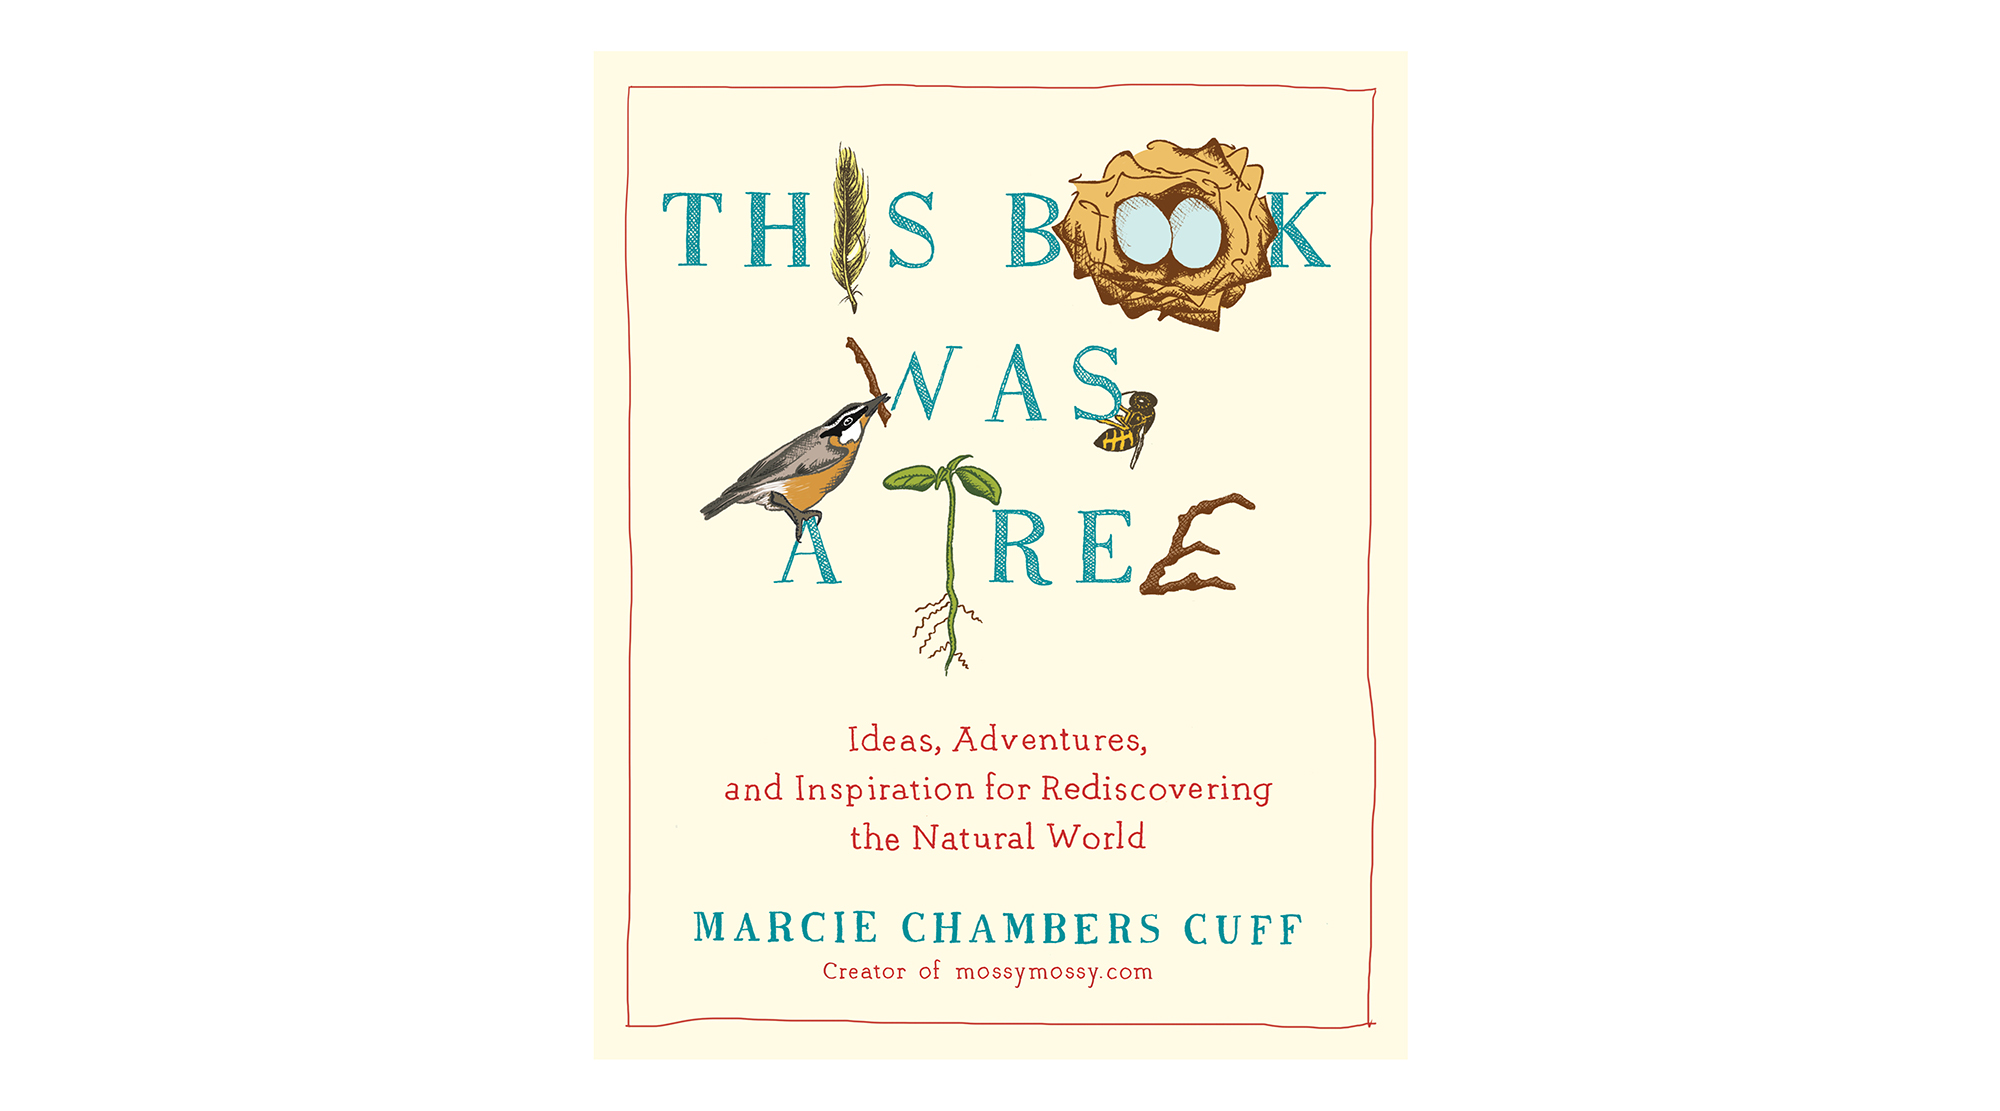 This Book Was a Tree, by Marcie Cuff